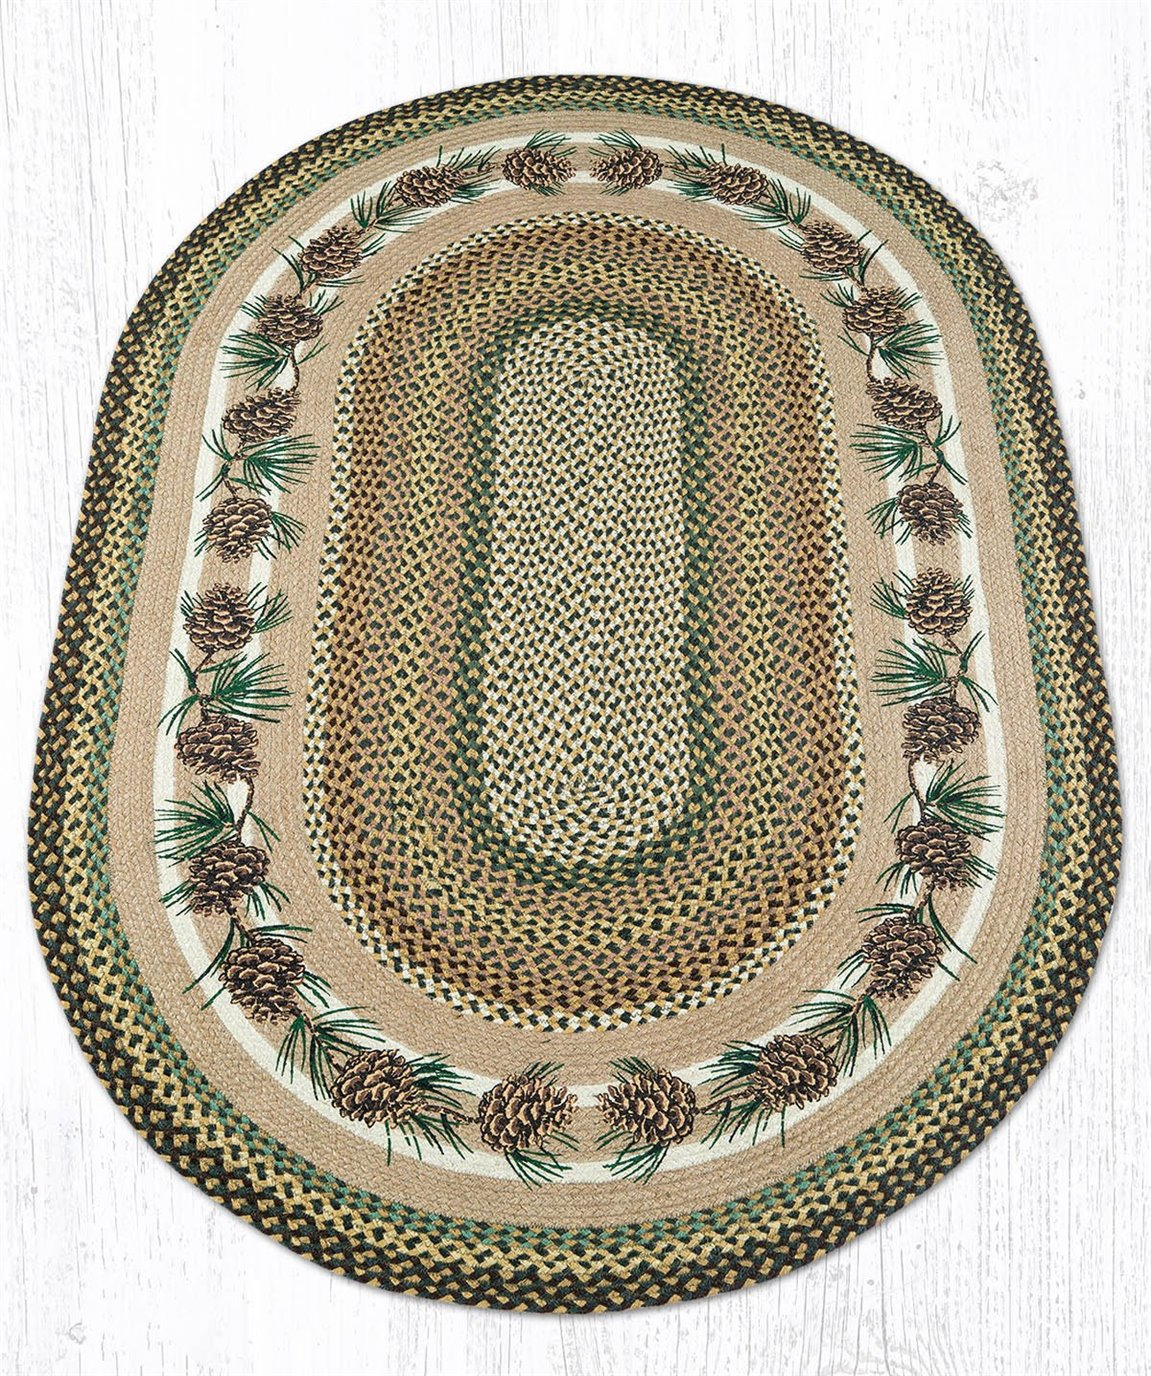 Needles & Cones Oval Braided Rug 4'x6'